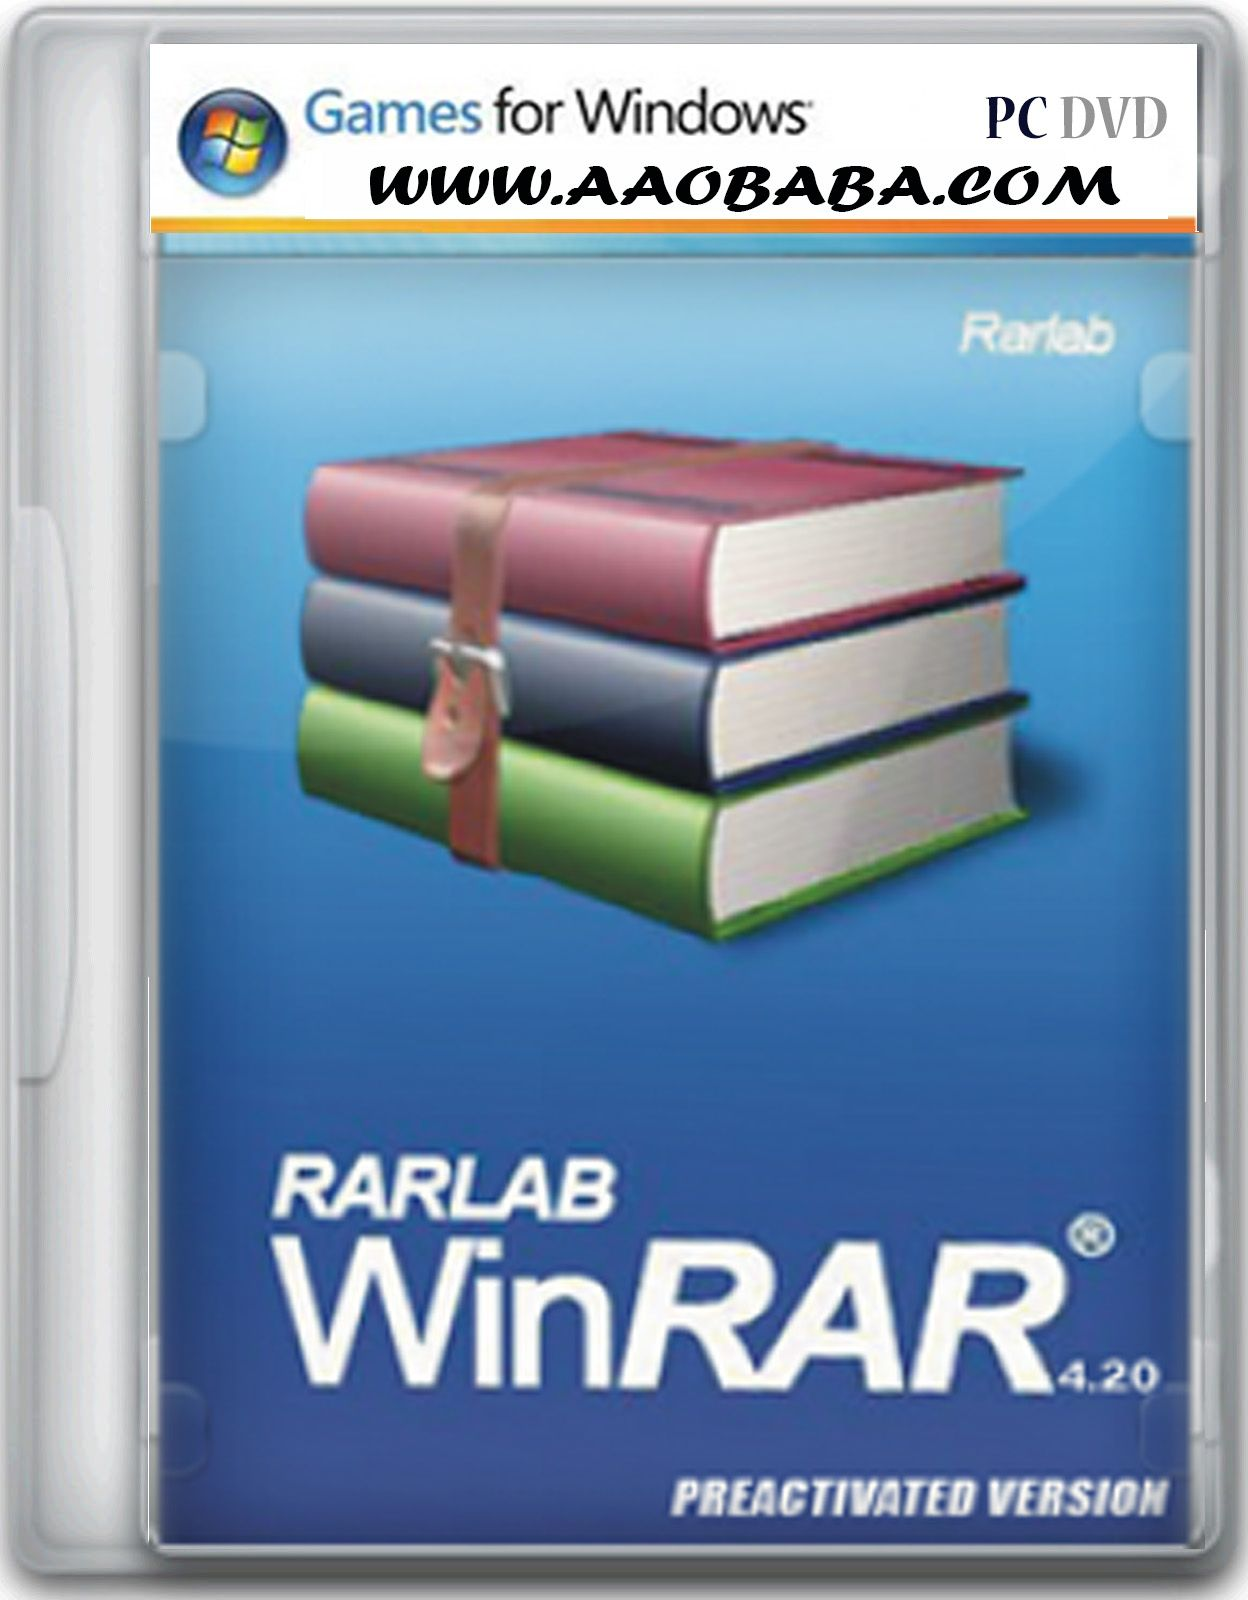 winrar full 64 bit crack